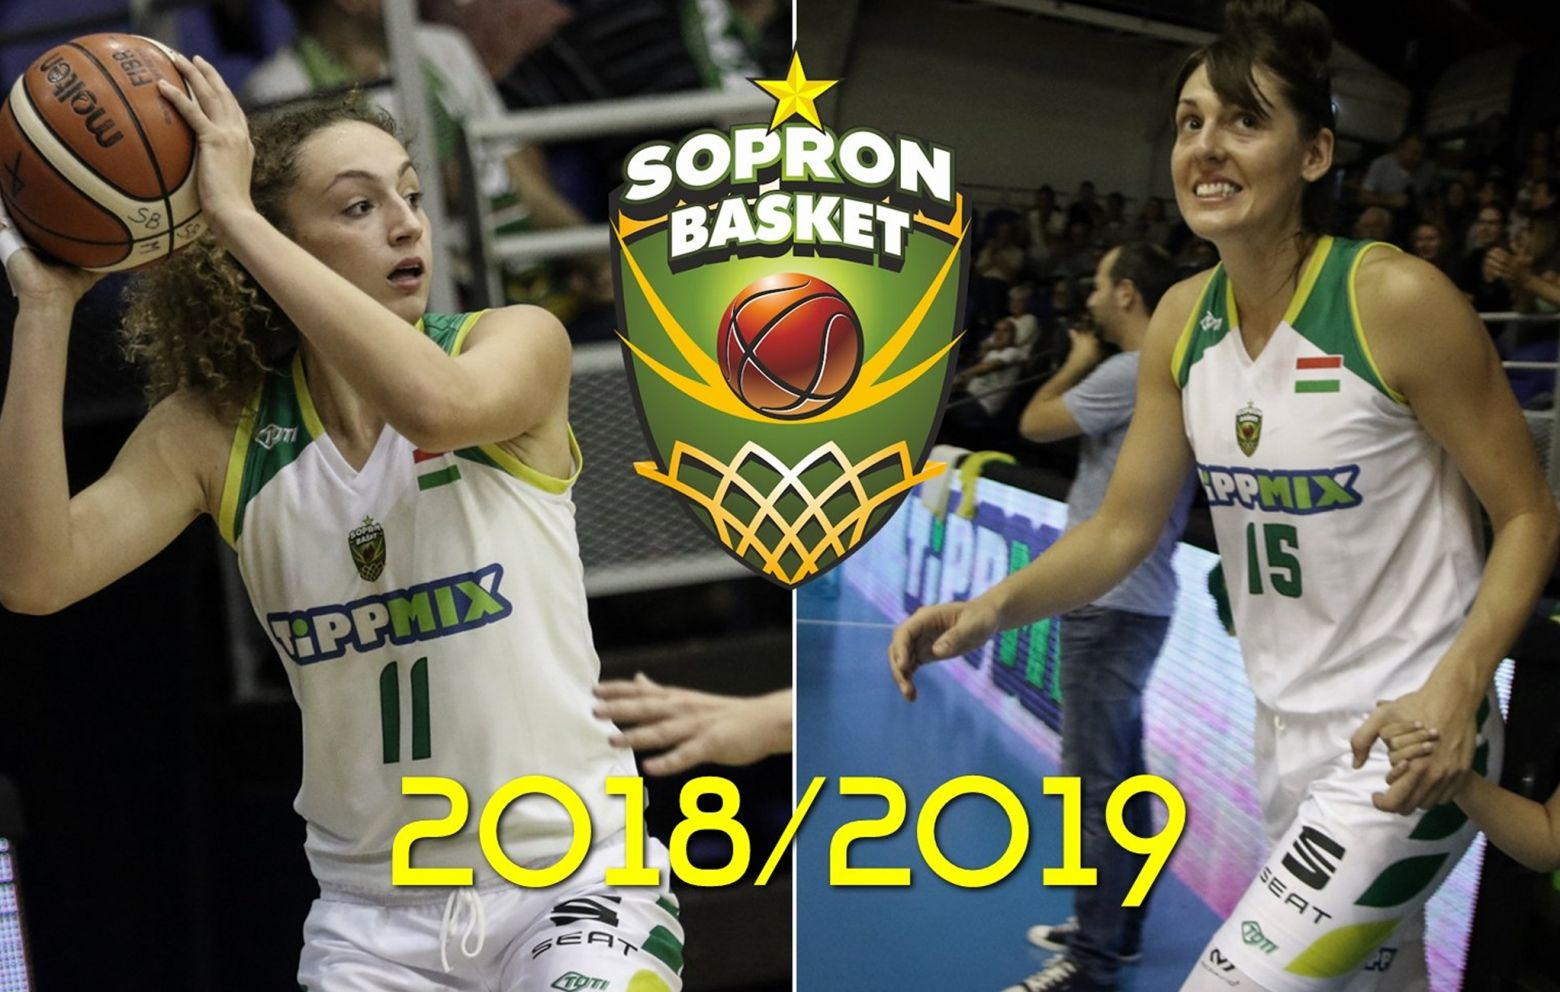 ALEKSANDRA CRVENDAKIC and TINA JOVANOVIC have re-signed with Sopron Basket for the 2018/19 season